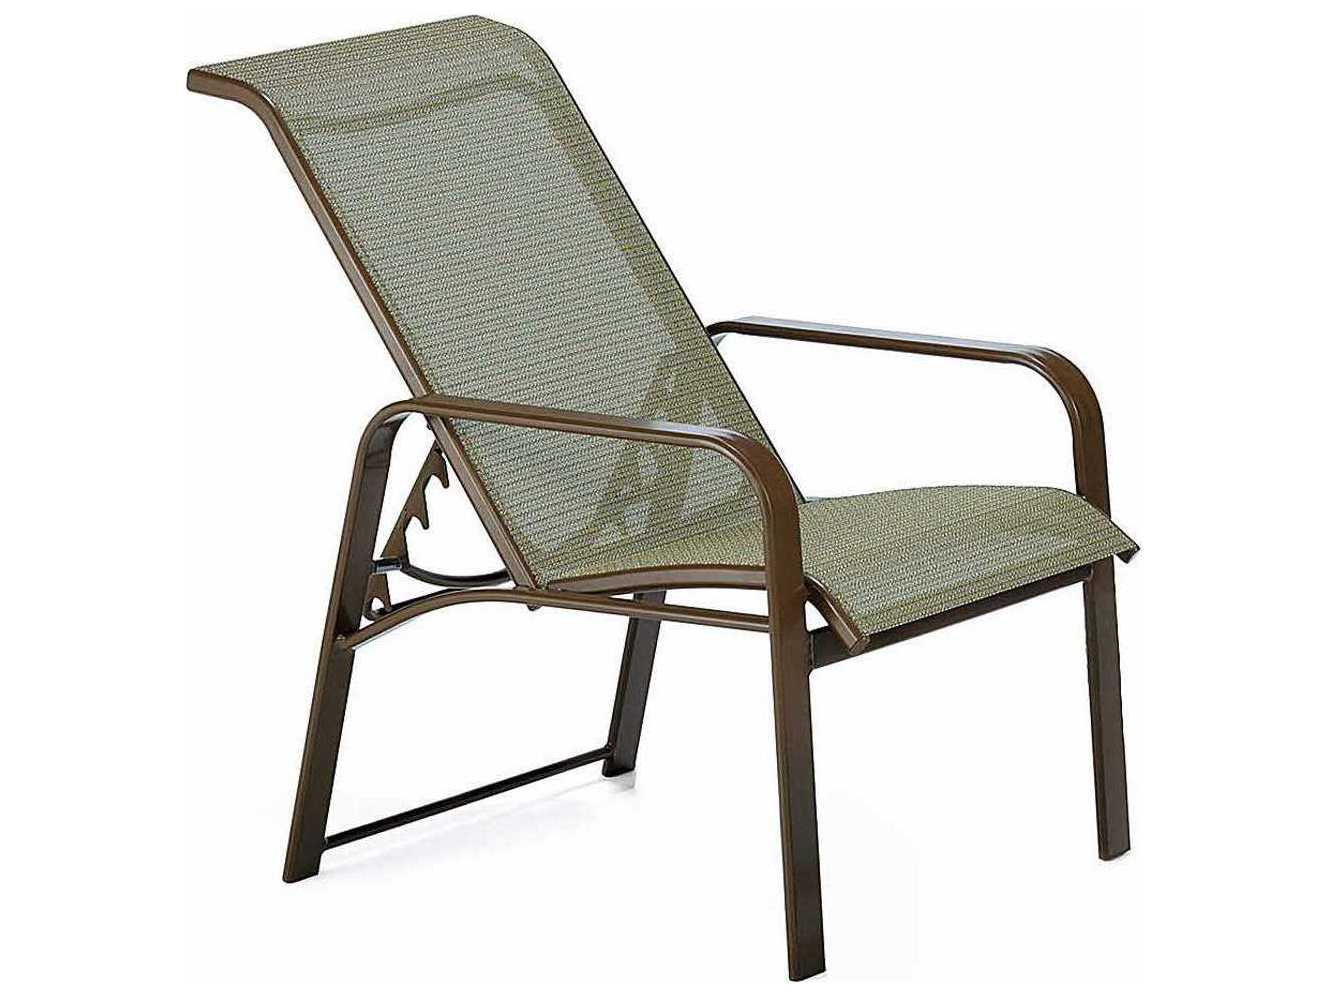 Sling Chairs Winston Seagrove Ii Sling Aluminum Adjustable Chair Wsm62017